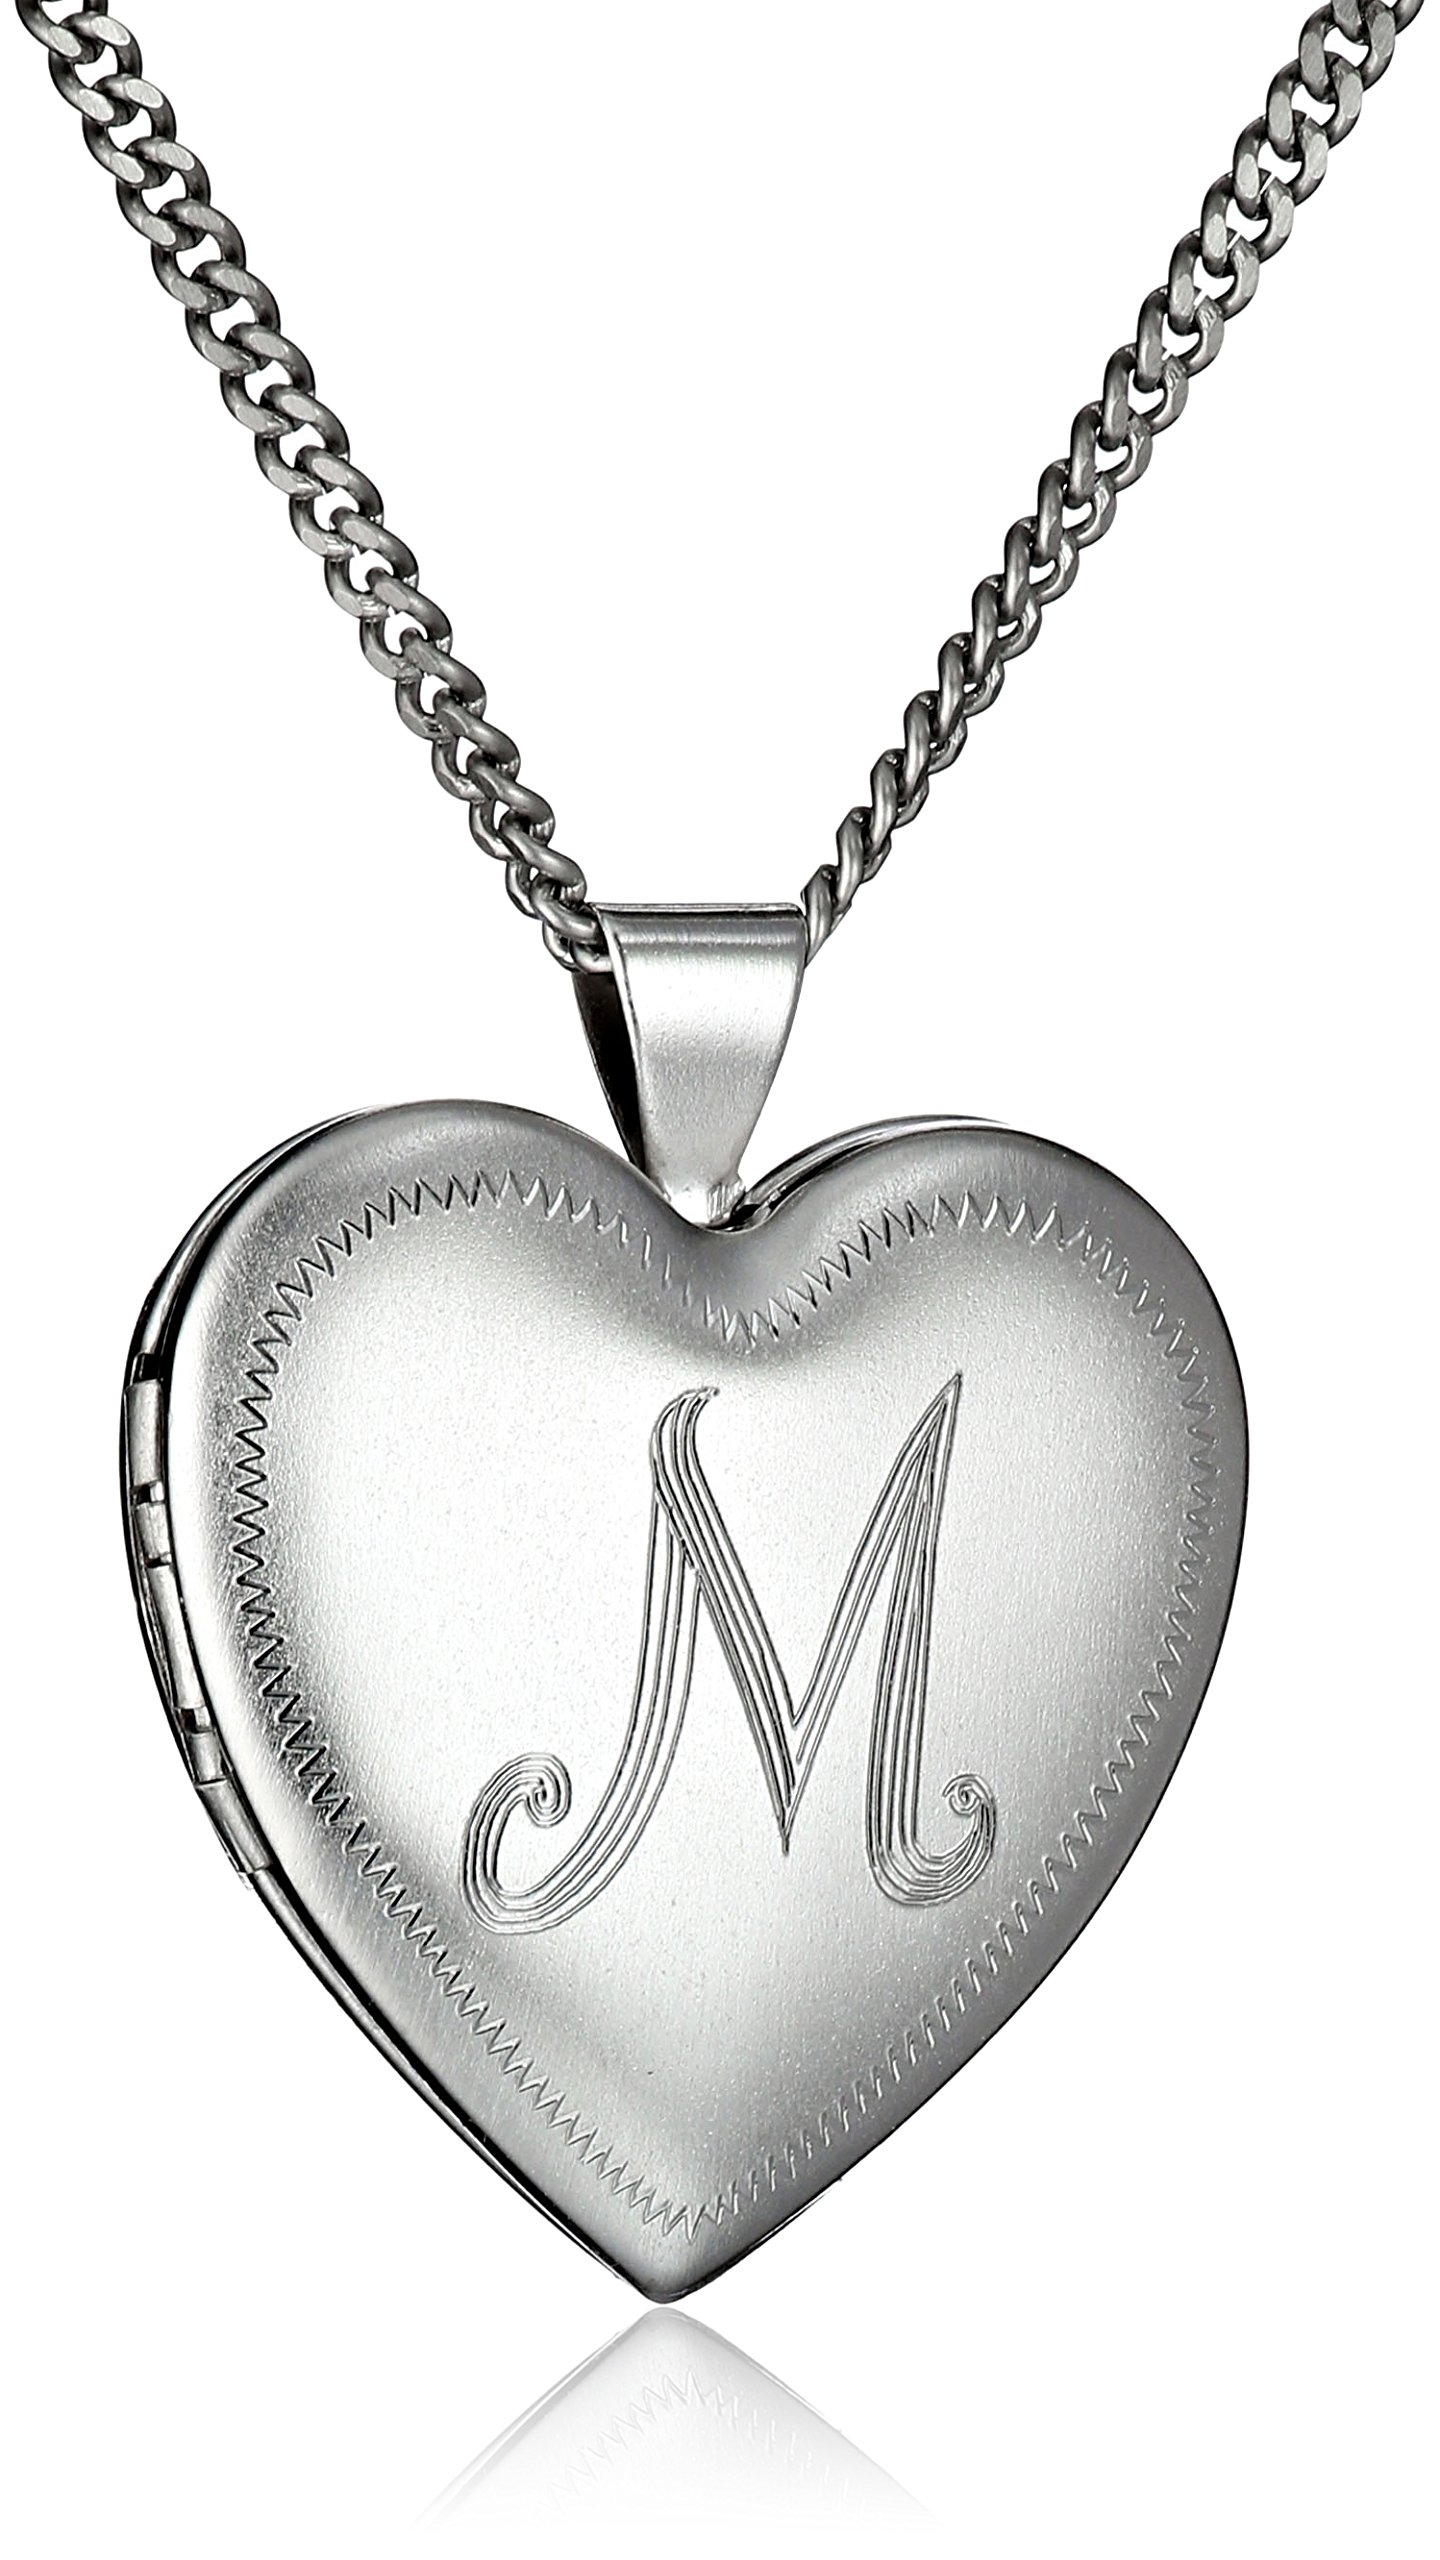 Rhodium-Plated Initial''M'' Heart 26mm (1'') Locket Necklace, 24''